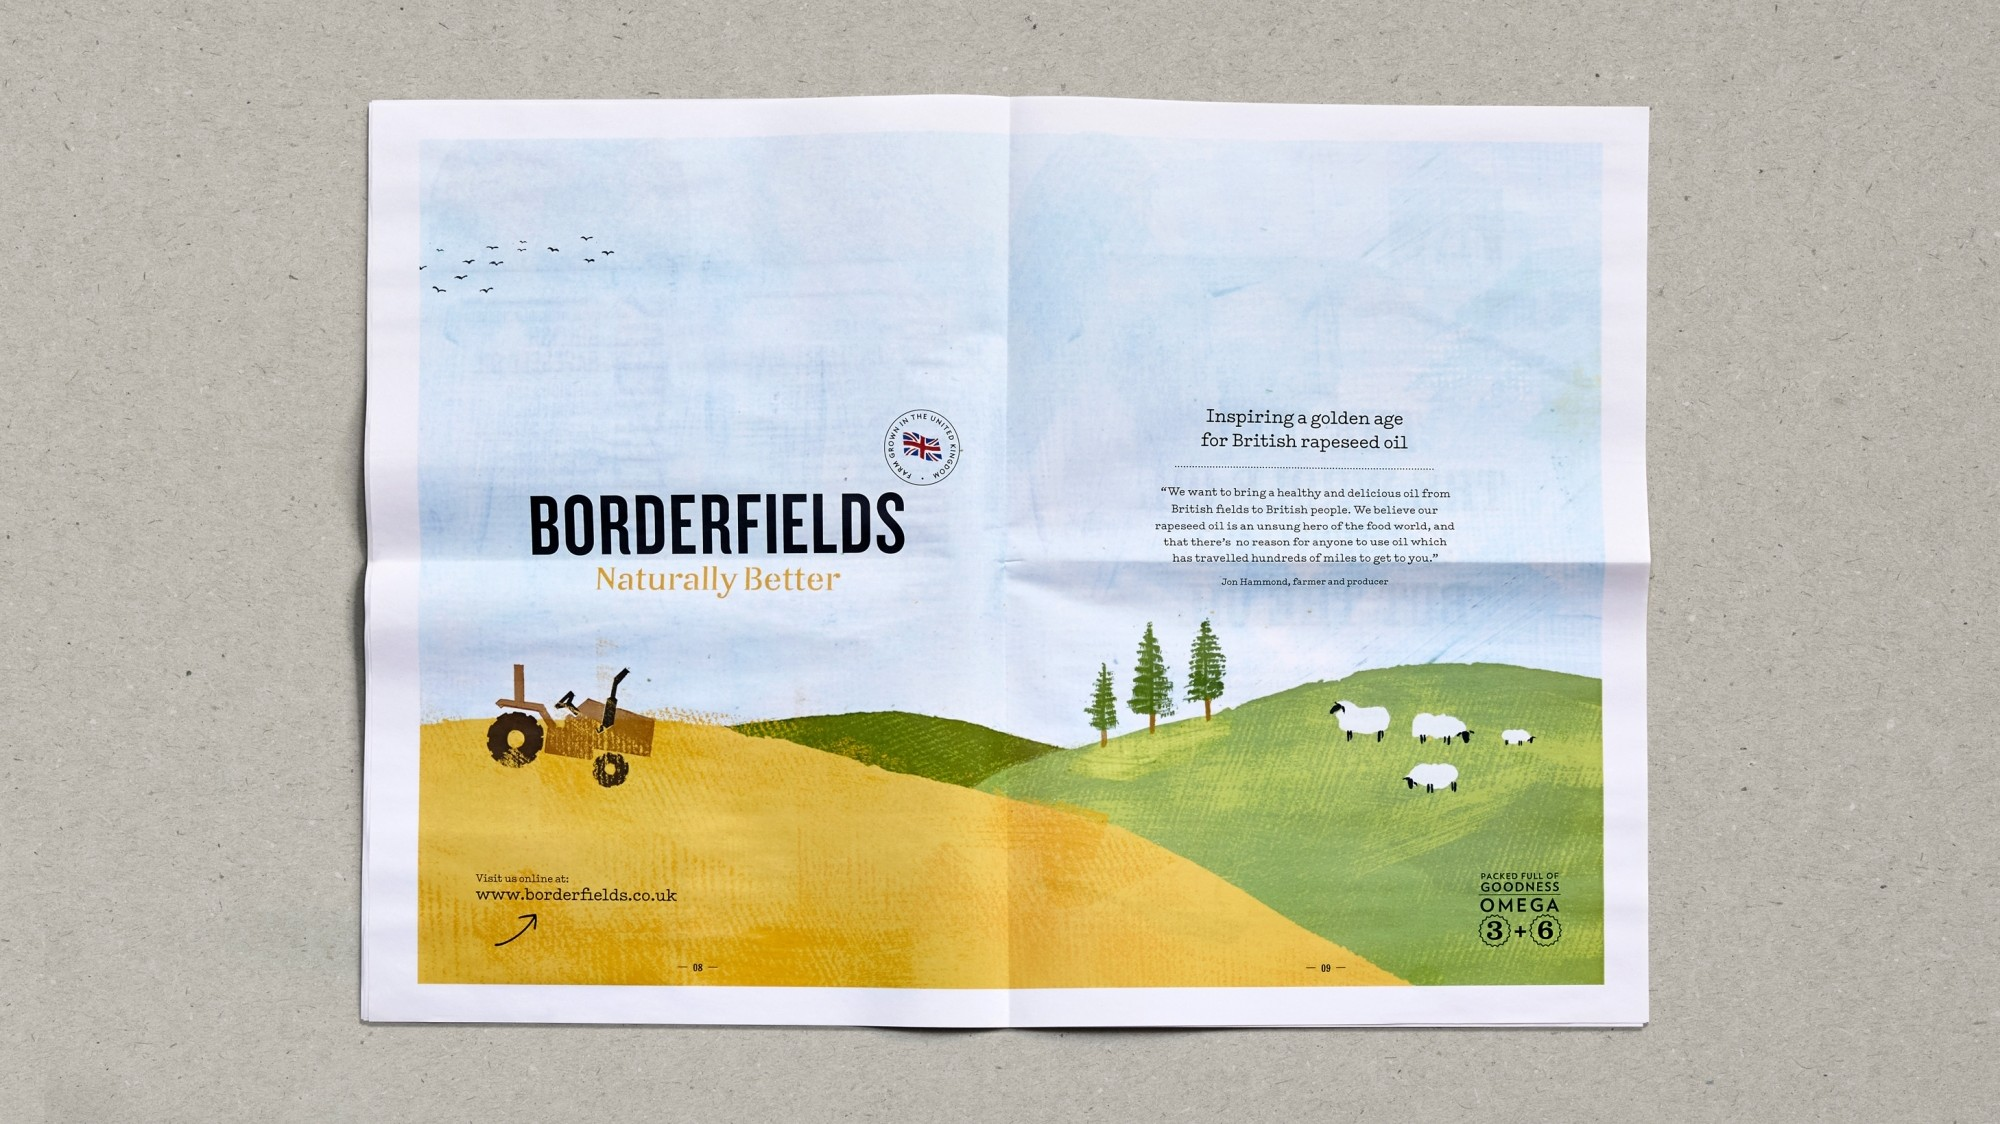 Borderfields-ÔÇô-Newspaper-spreads-03@2x